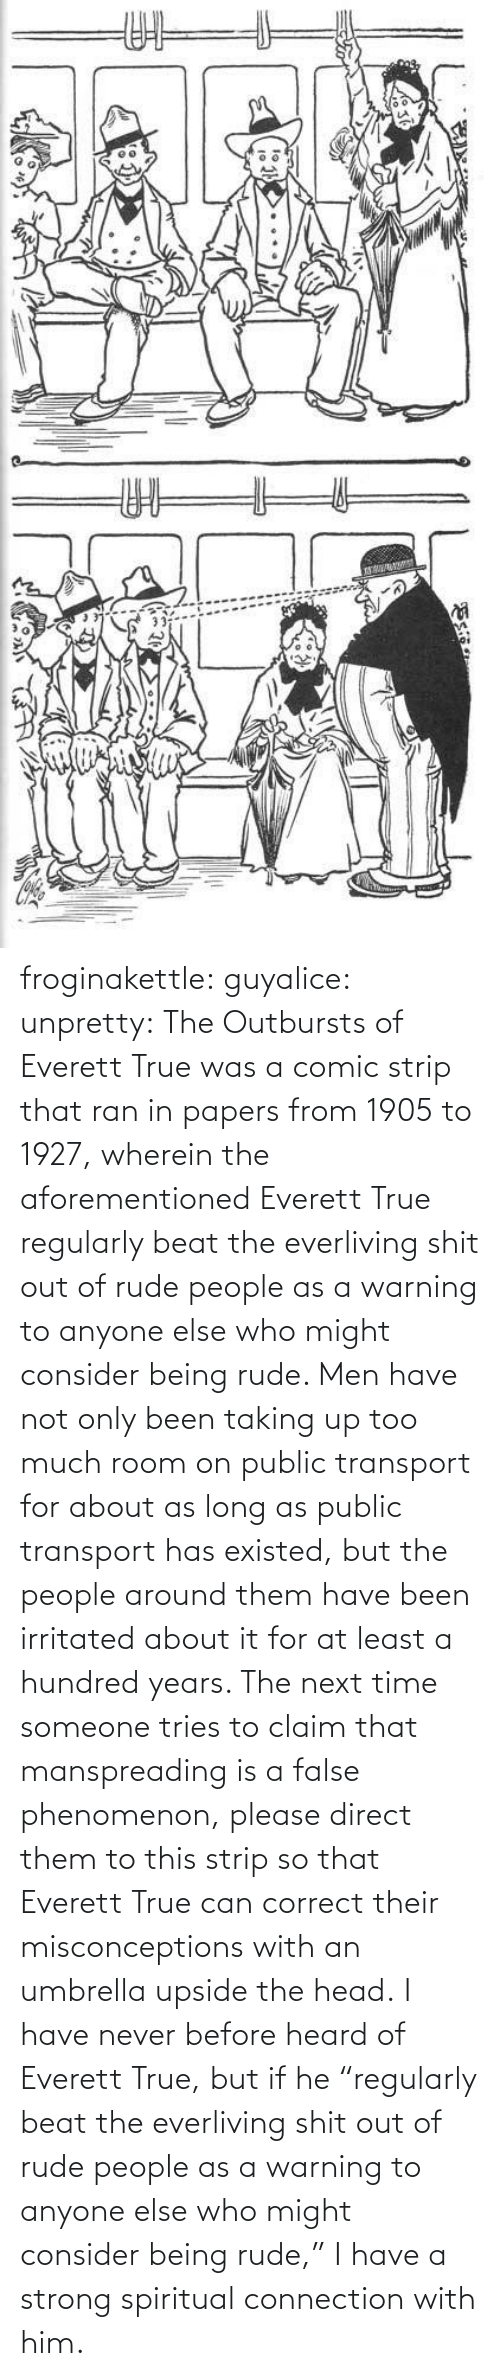 "Consider: ఇ  క froginakettle:  guyalice:  unpretty:  The Outbursts of Everett True was a comic strip that ran in papers from 1905 to 1927, wherein the aforementioned Everett True regularly beat the everliving shit out of rude people as a warning to anyone else who might consider being rude. Men have not only been taking up too much room on public transport for about as long as public transport has existed, but the people around them have been irritated about it for at least a hundred years. The next time someone tries to claim that manspreading is a false phenomenon, please direct them to this strip so that Everett True can correct their misconceptions with an umbrella upside the head.  I have never before heard of Everett True, but if he ""regularly beat the everliving shit out of rude people as a warning to anyone else who might consider being rude,"" I have a strong spiritual connection with him."